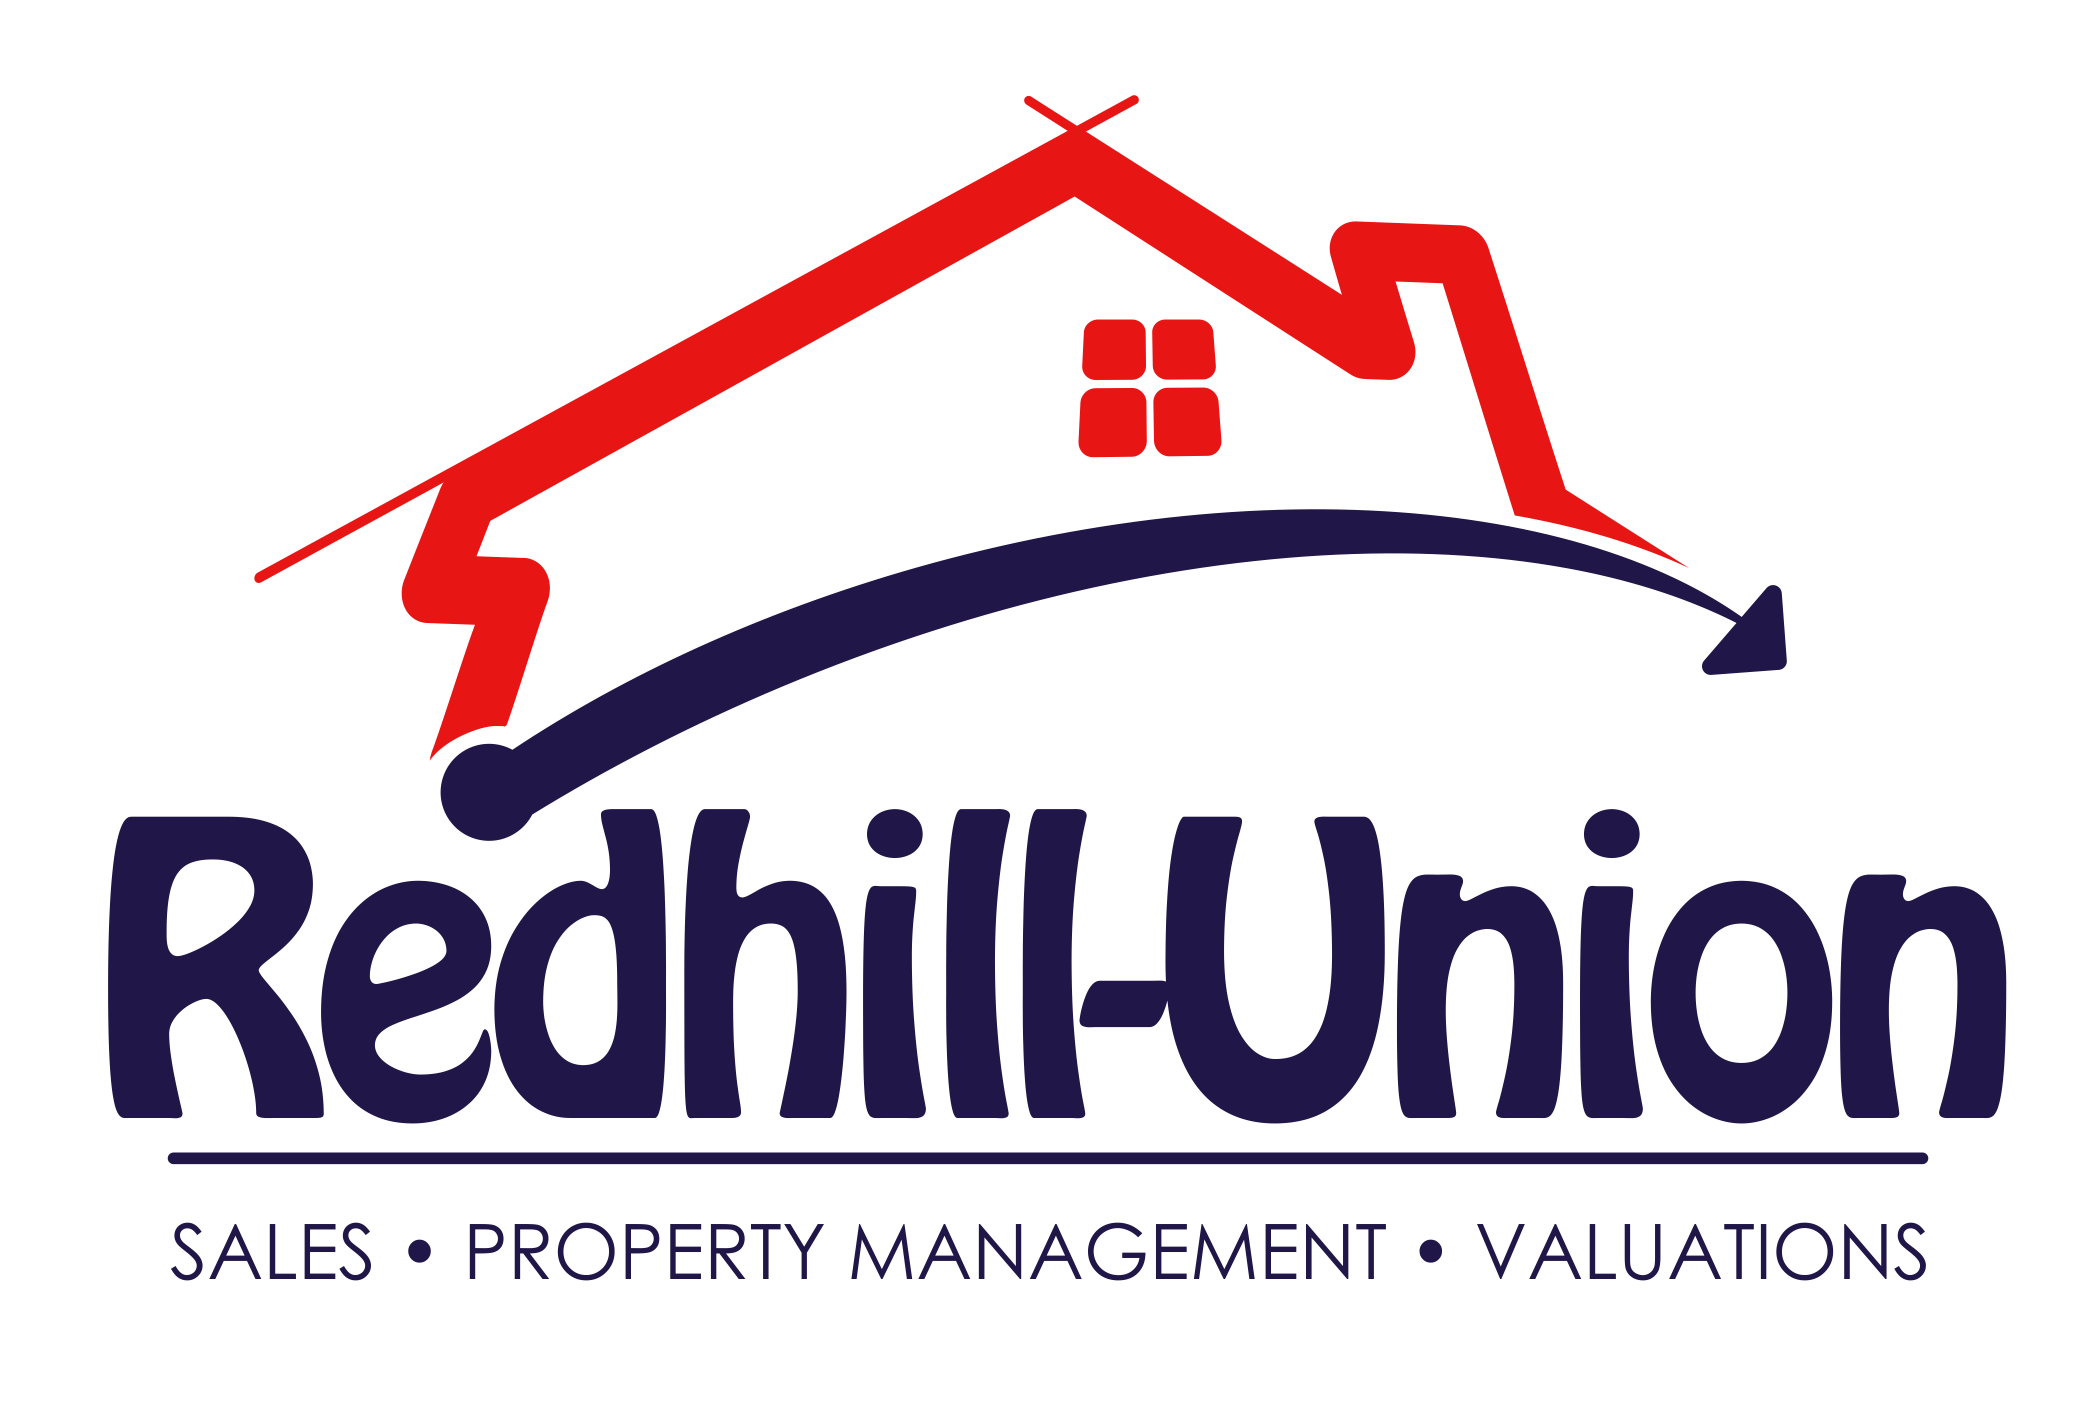 Redhill-Union | Property management company in Springs |Properties for sale Springs eastrand | Property rentals eastrand| Marketing or rental Determination valuation  Gauteng| Property management East Rand | Sectional title replacement valuation  Gauteng